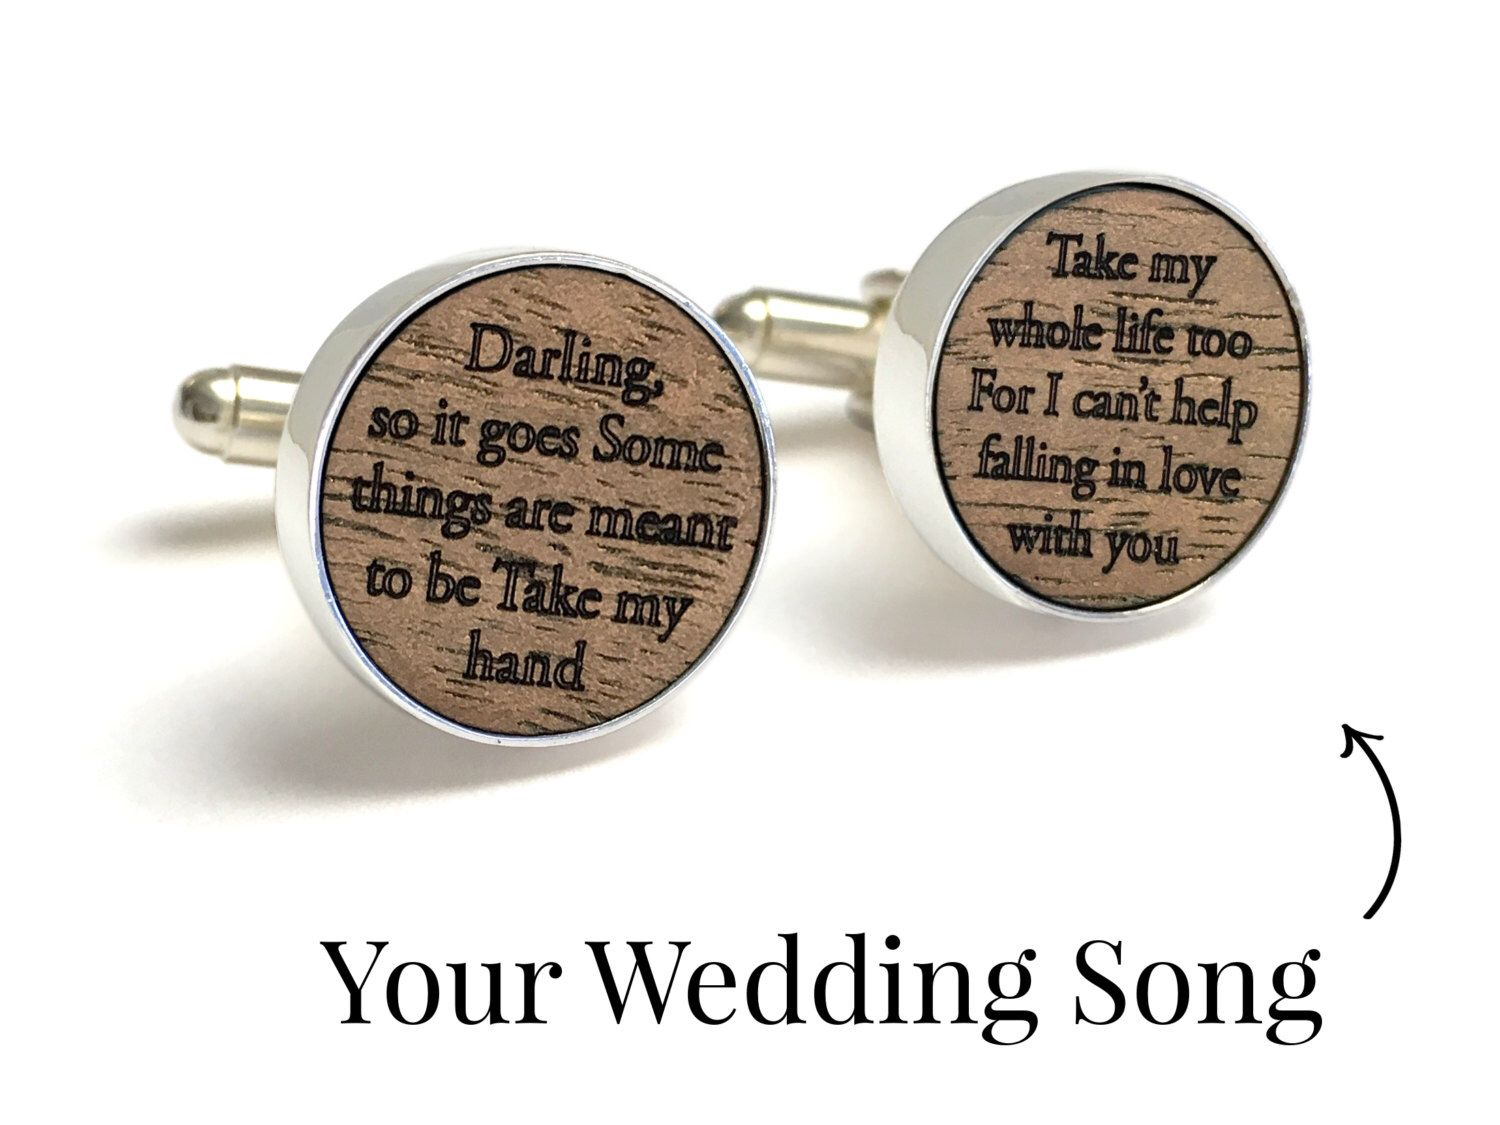 e71639b690c2 Personalized Cufflinks with Song Lyrics   Wood Anniversary Gift   5th  Anniversary Gift for Him